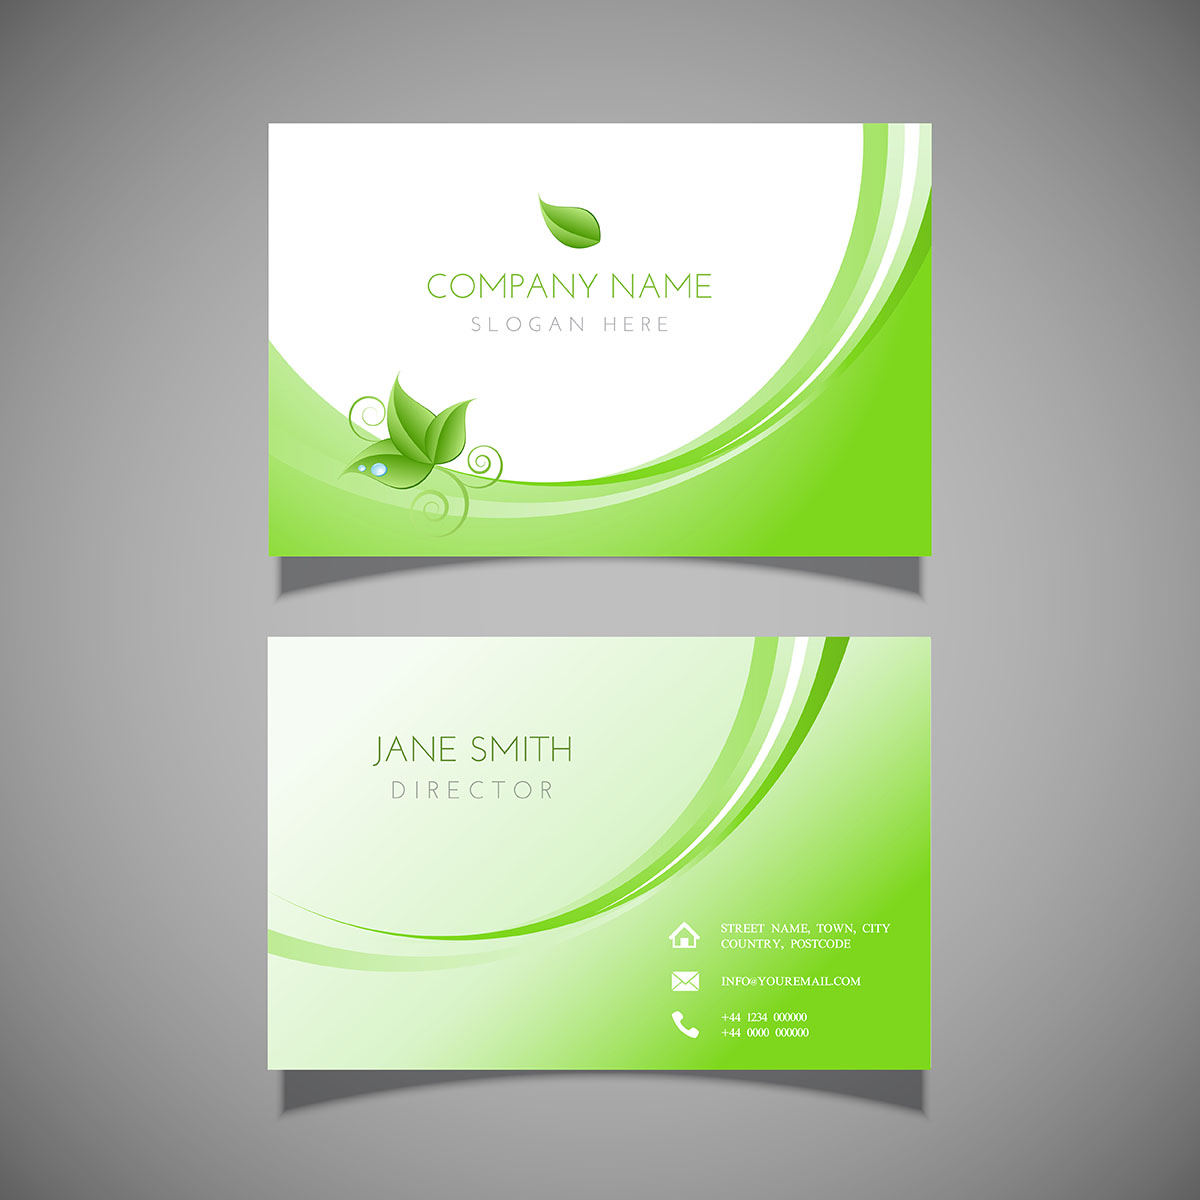 business card with leaf design 204326 vector art at vecteezy